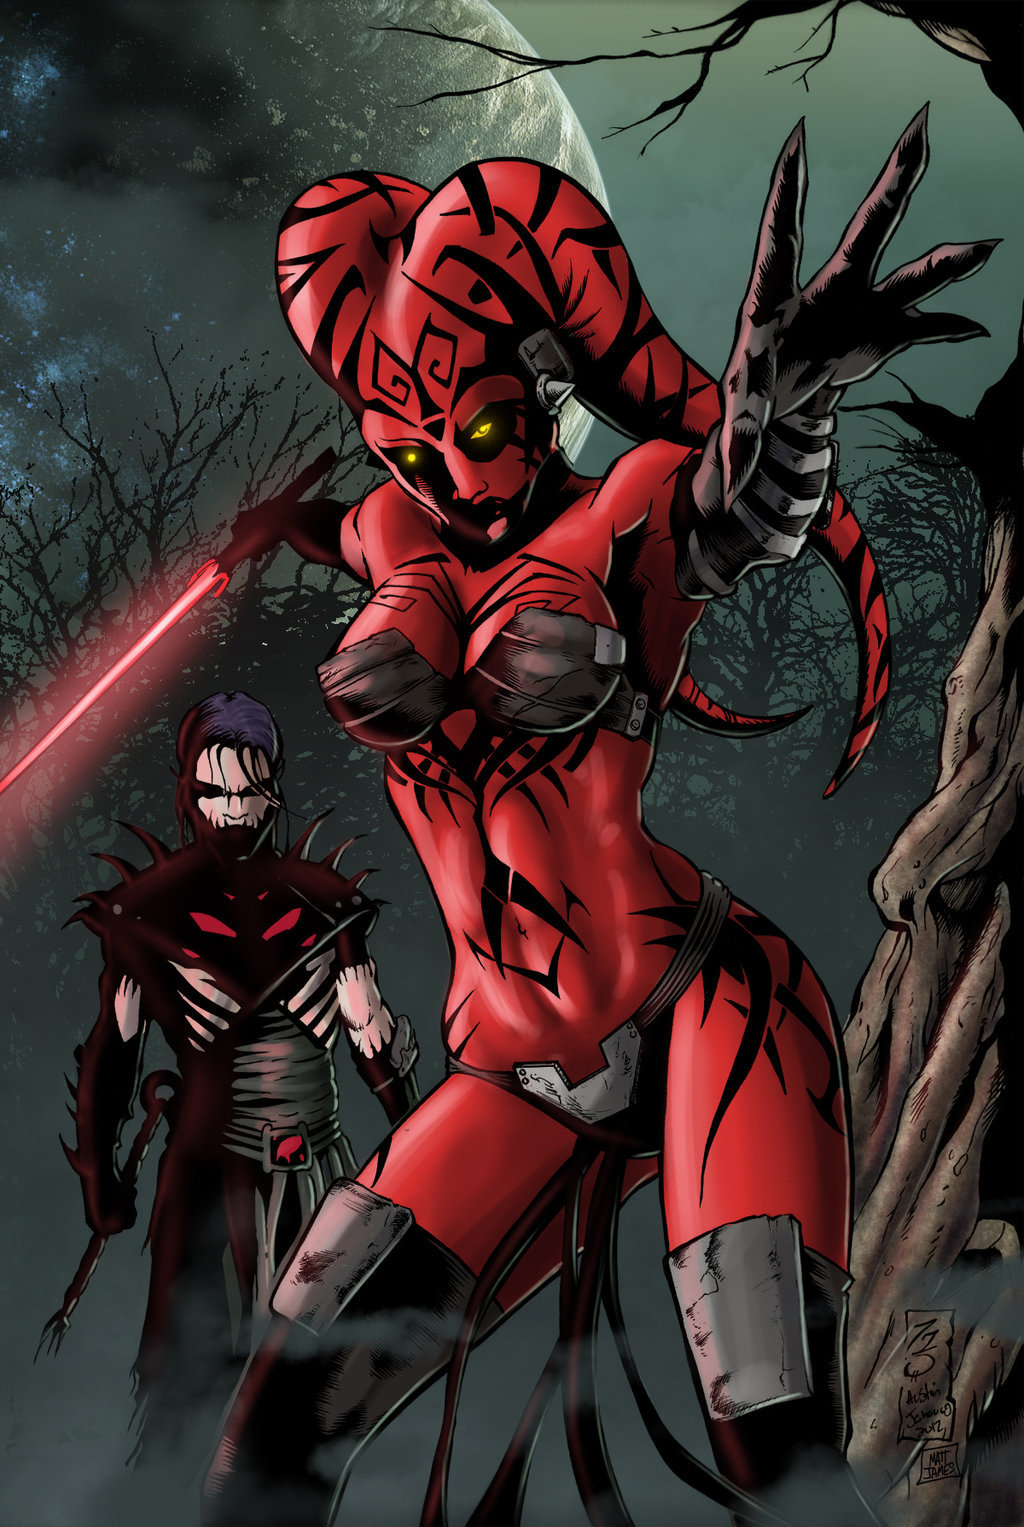 Darth Talon and Darth Nihl